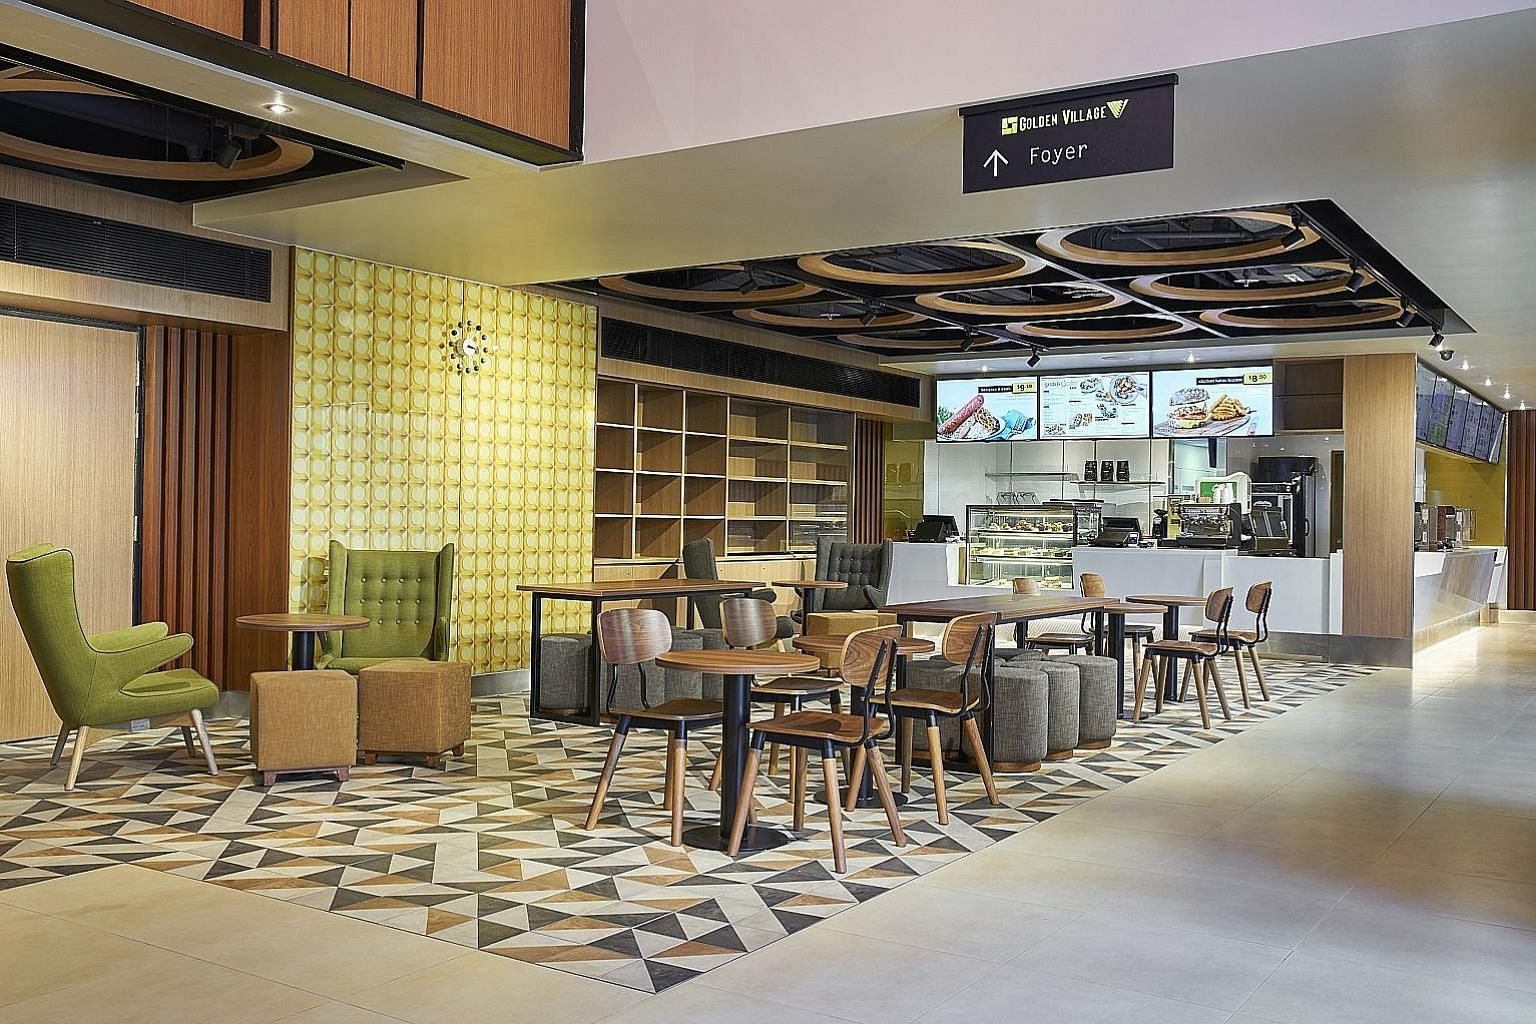 At GV Paya Lebar, grab exclusive food items at its Grab & Gold Cafe (above), or watch a screening in comfort in its premium-class Duo Deluxe auditorium (below), which has larger seats and better back support.